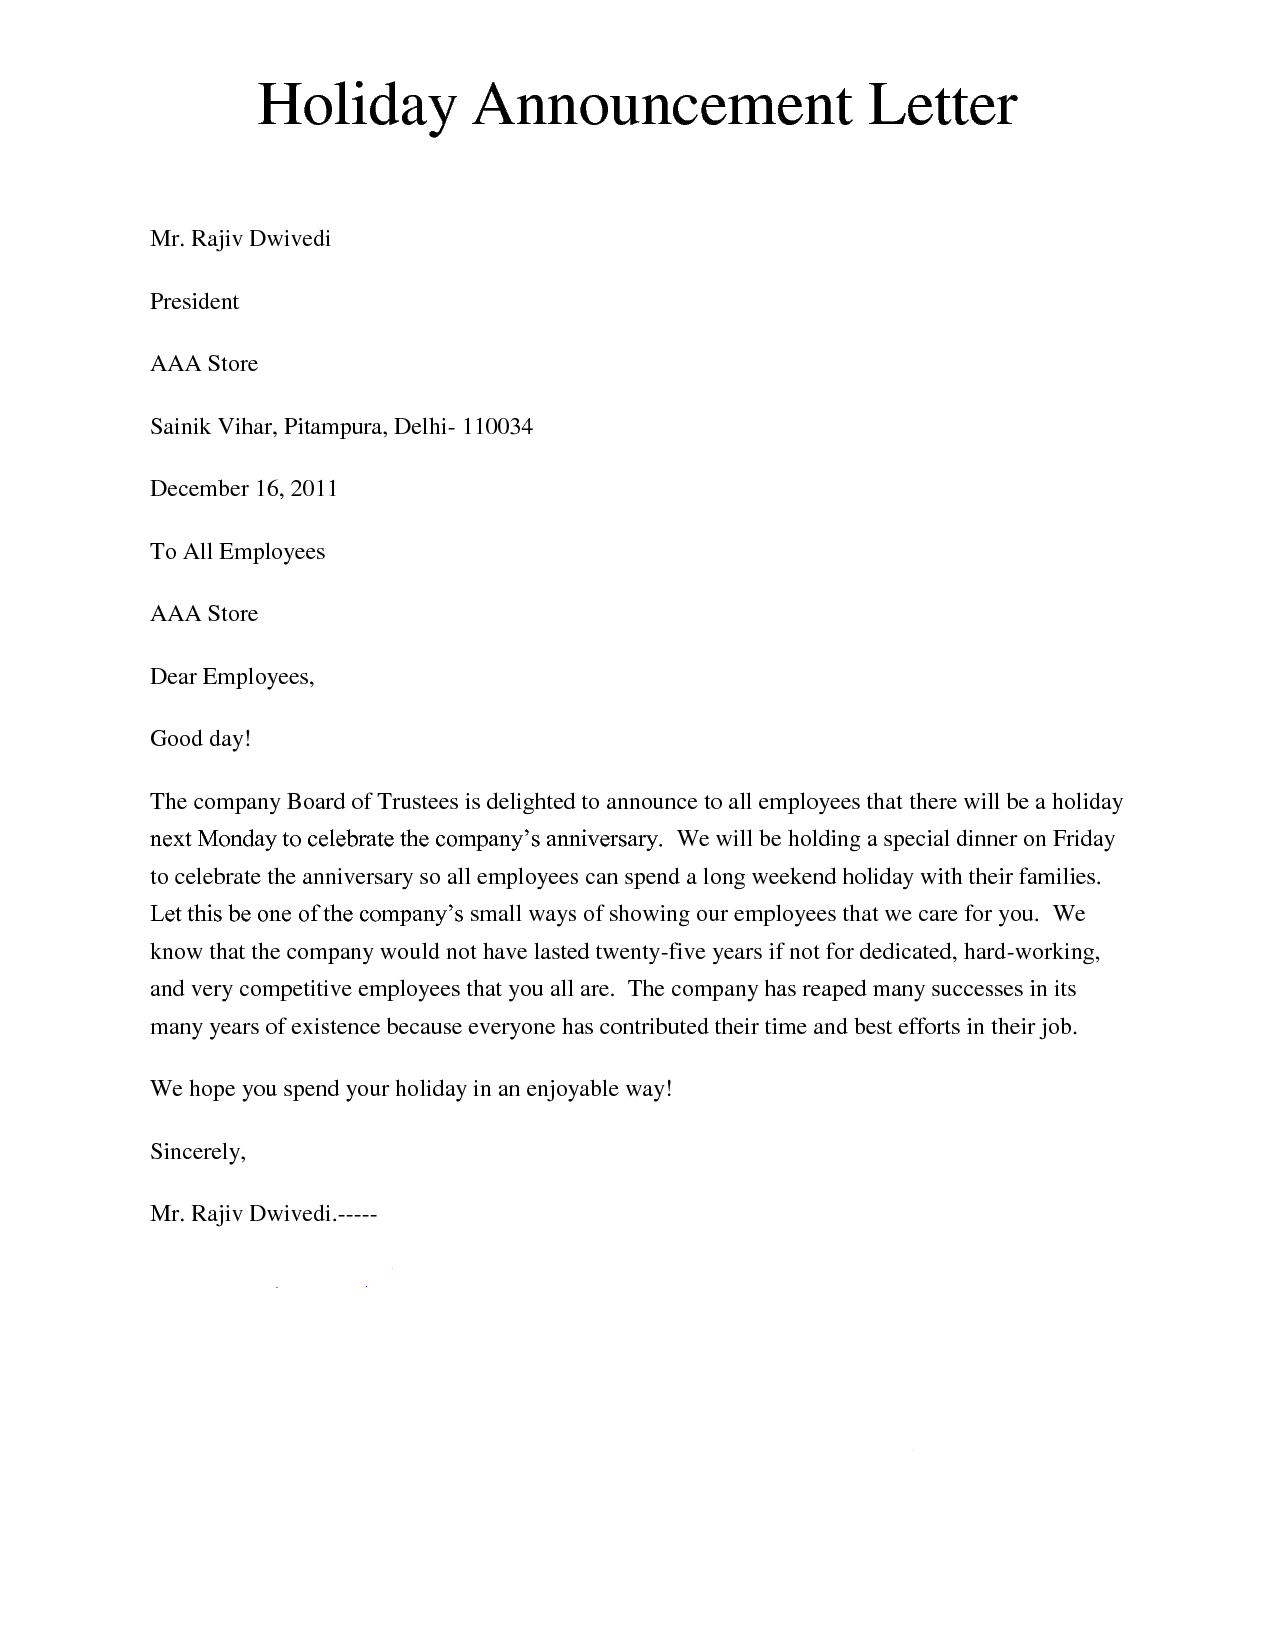 retirement announcement letter a well prepared letter which is holiday announcement letter giving a letter to inform about the holiday called holiday notice letter